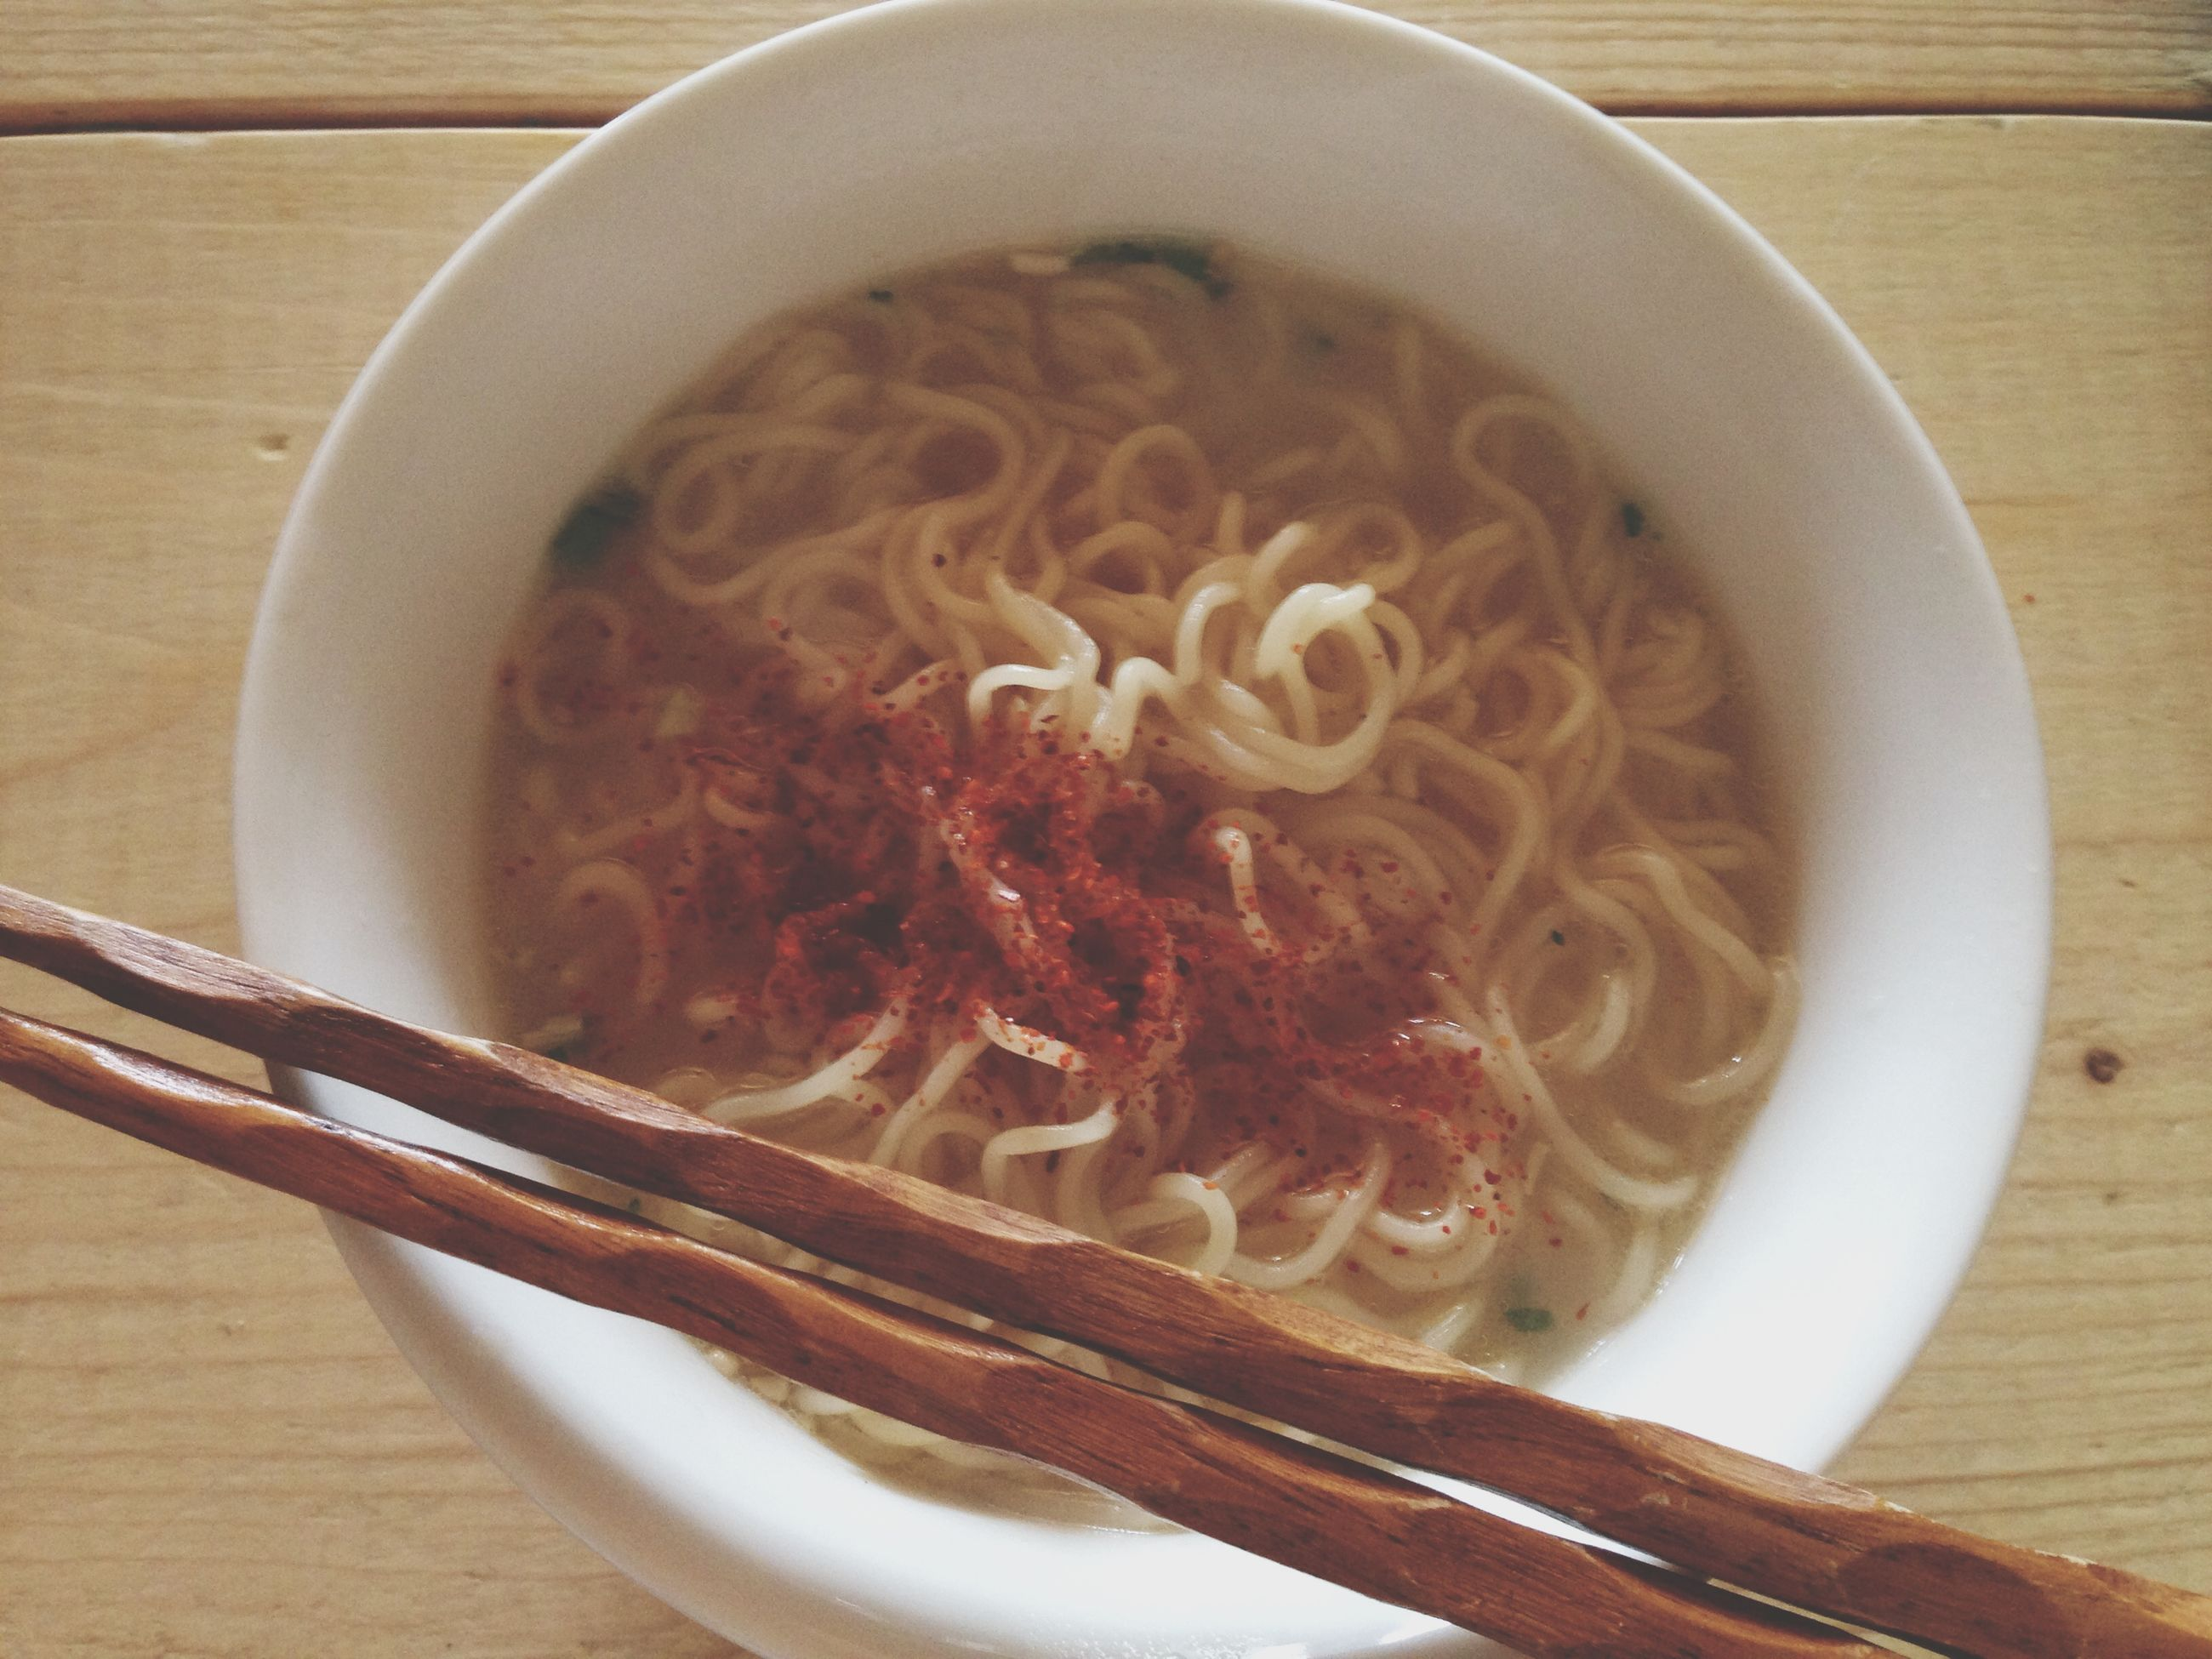 indoors, food and drink, food, table, freshness, high angle view, still life, plate, healthy eating, close-up, ready-to-eat, bowl, directly above, noodles, spoon, meal, serving size, no people, indulgence, wood - material